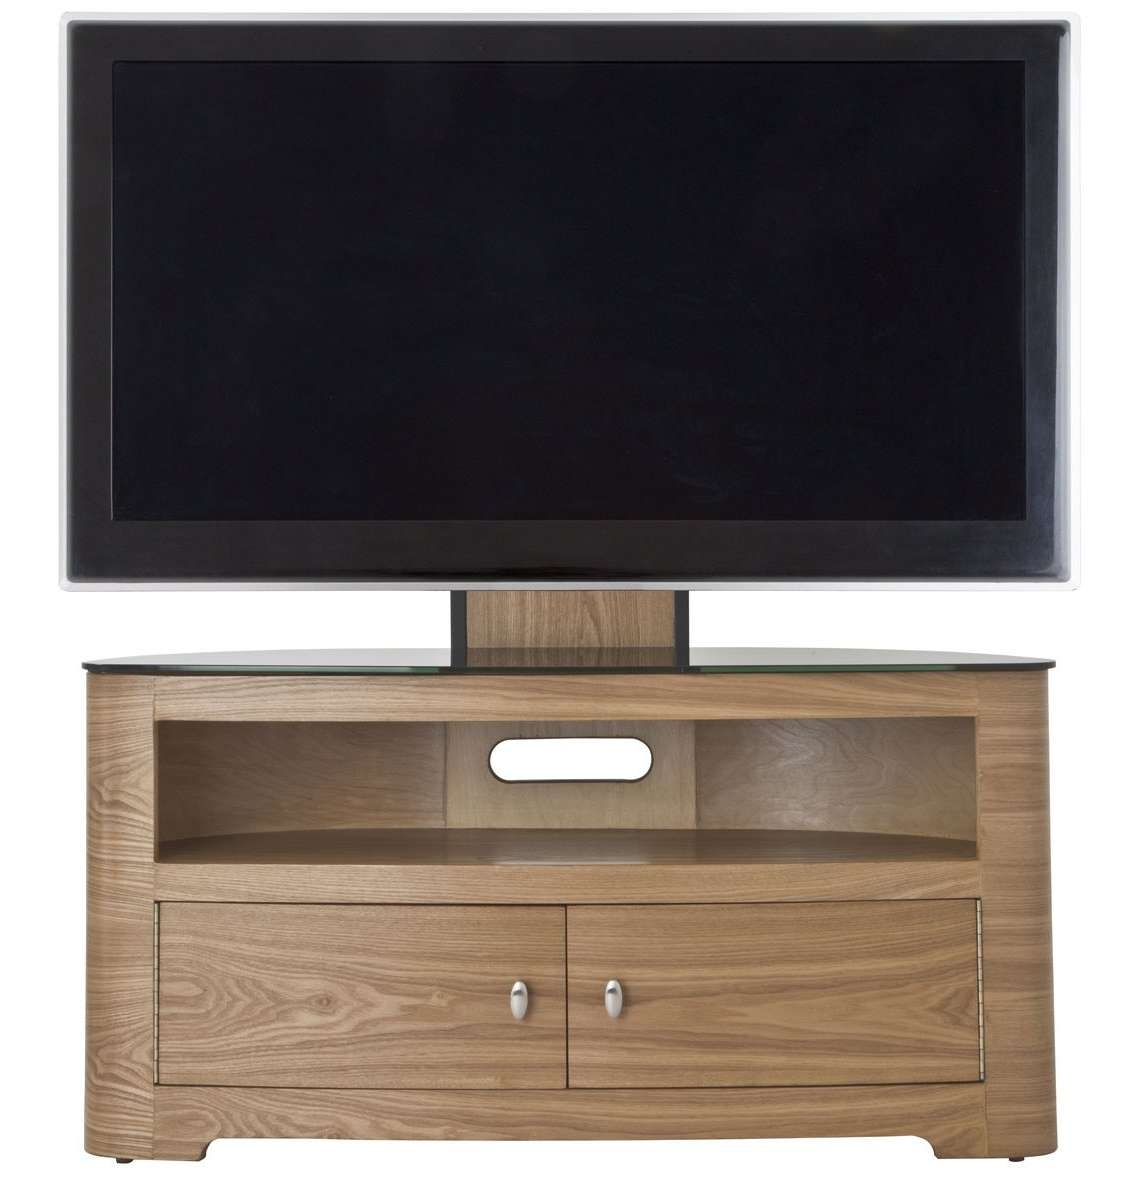 Avf Blenheim Oak Cantilever Tv Stand Intended For Tv Stands In Oak (View 6 of 15)